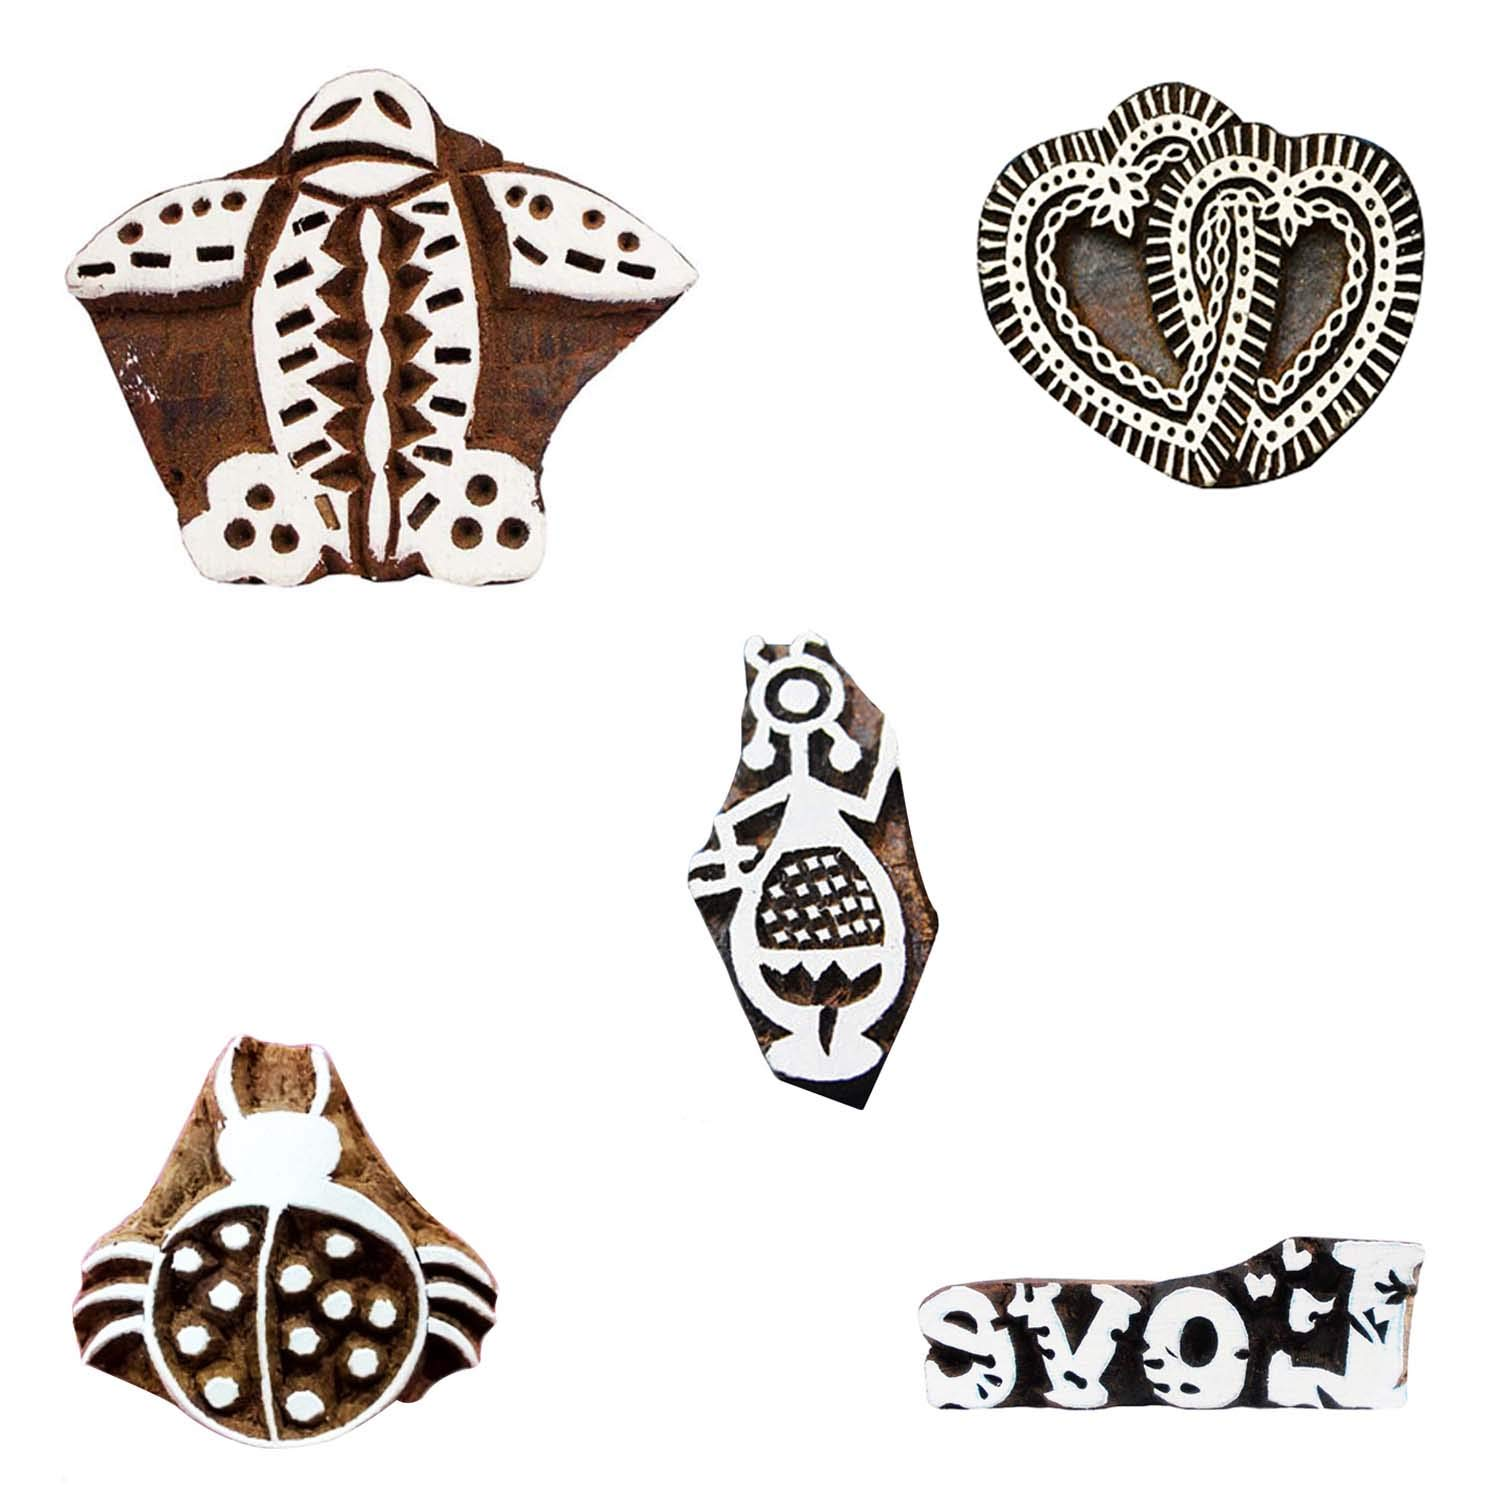 Printing Wooden Block Handcarved Warli Art, Love, Aeroplane, Heart Textile Stamps Pottery Clay Pack of 5 Tattoo Art Stamps Printing Blocks by CraftyArt